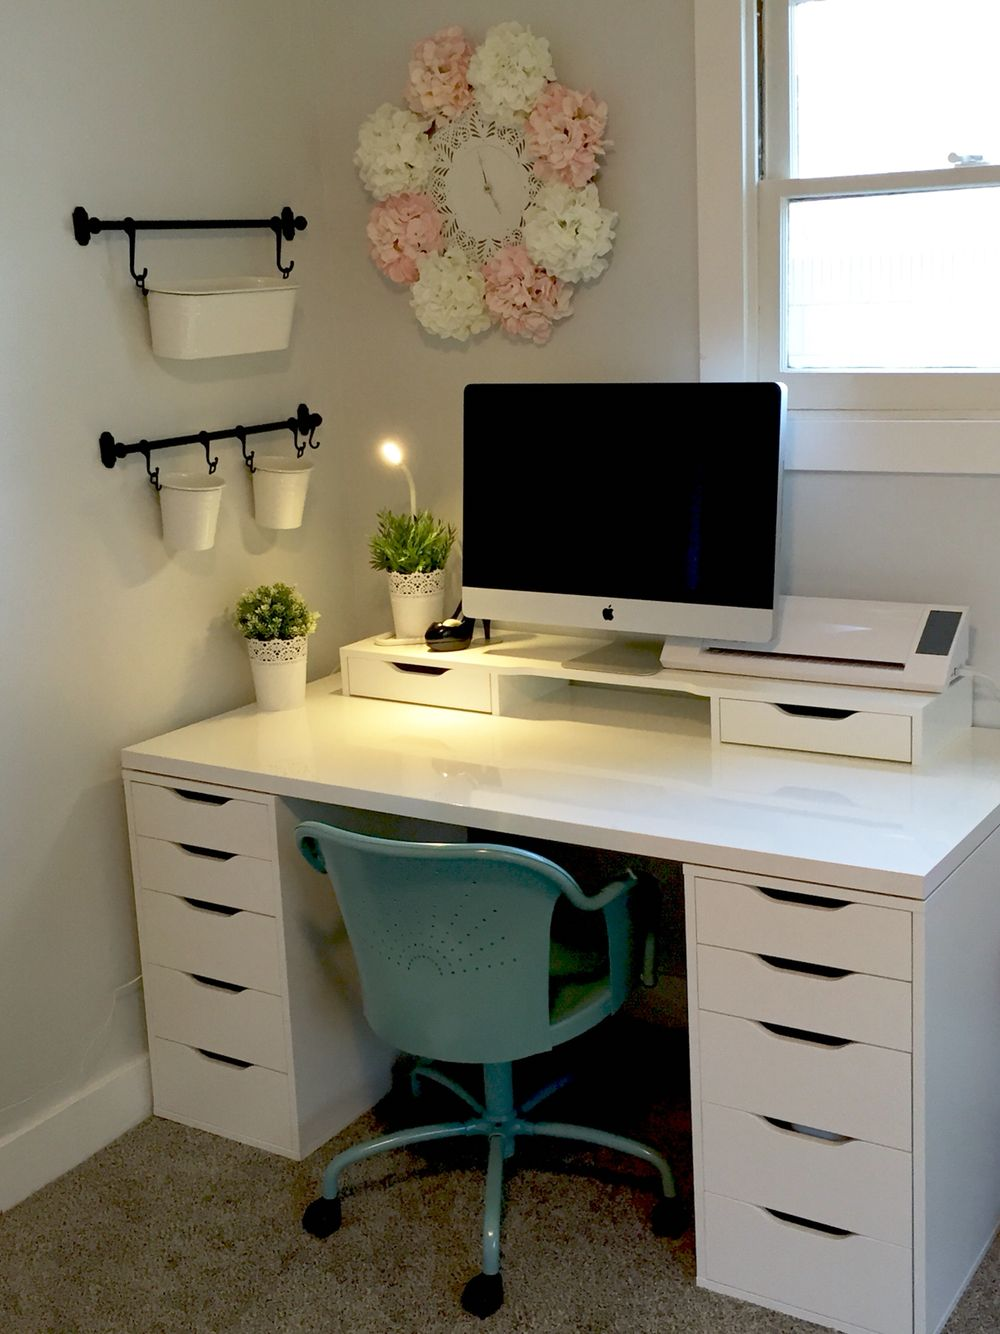 Craft Room   IKEA   ALEX   LINNMON   DIY Crafts   Pinterest   Ikea     Craft Room   IKEA   ALEX   LINNMON